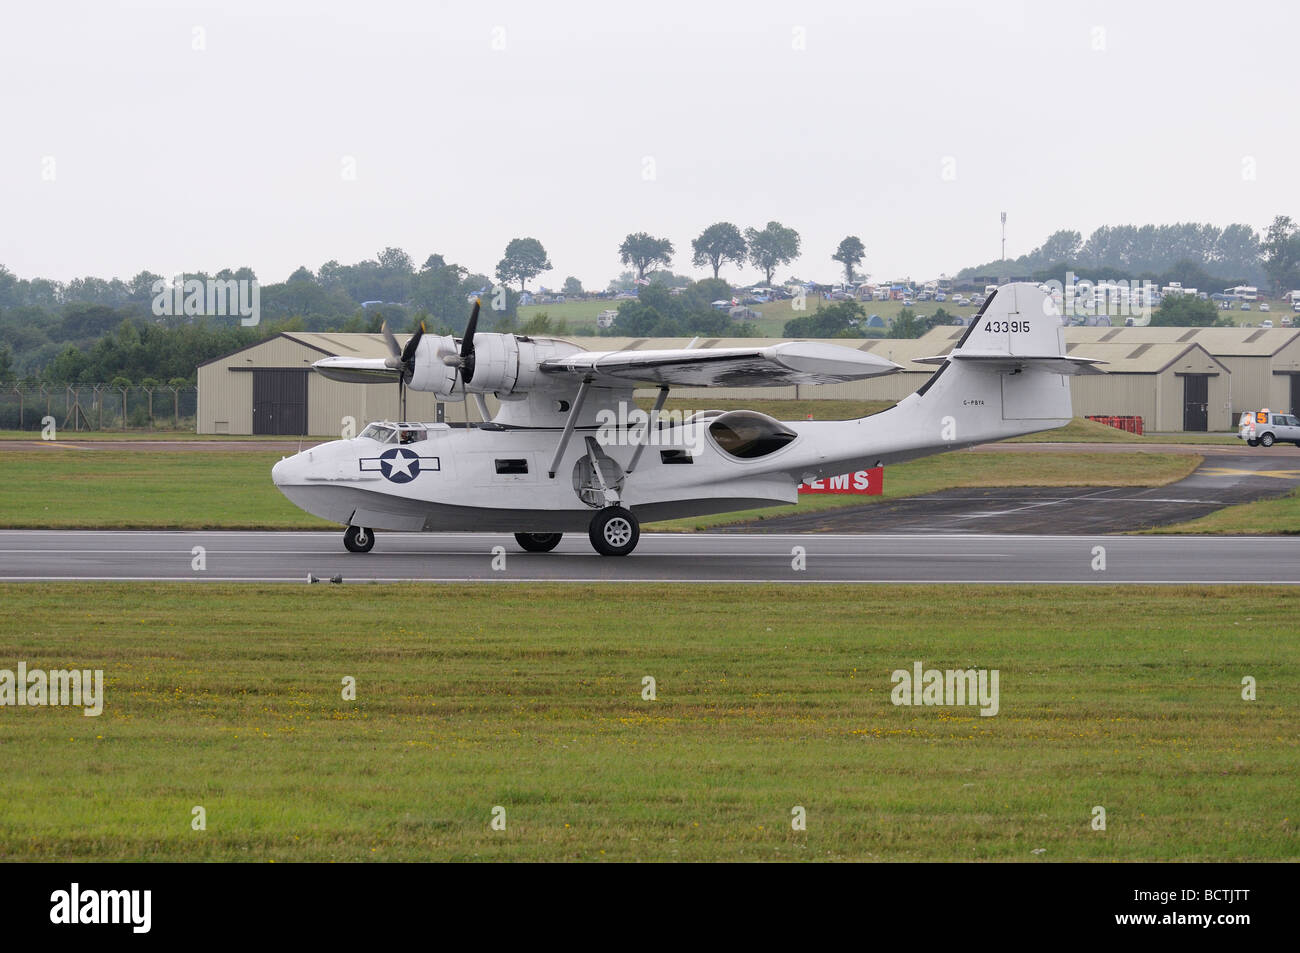 Canadian Vickers PBY affectionally known as a Catalina arrives at RAF Fairford Gloucestershire England for the RIAT - Stock Image